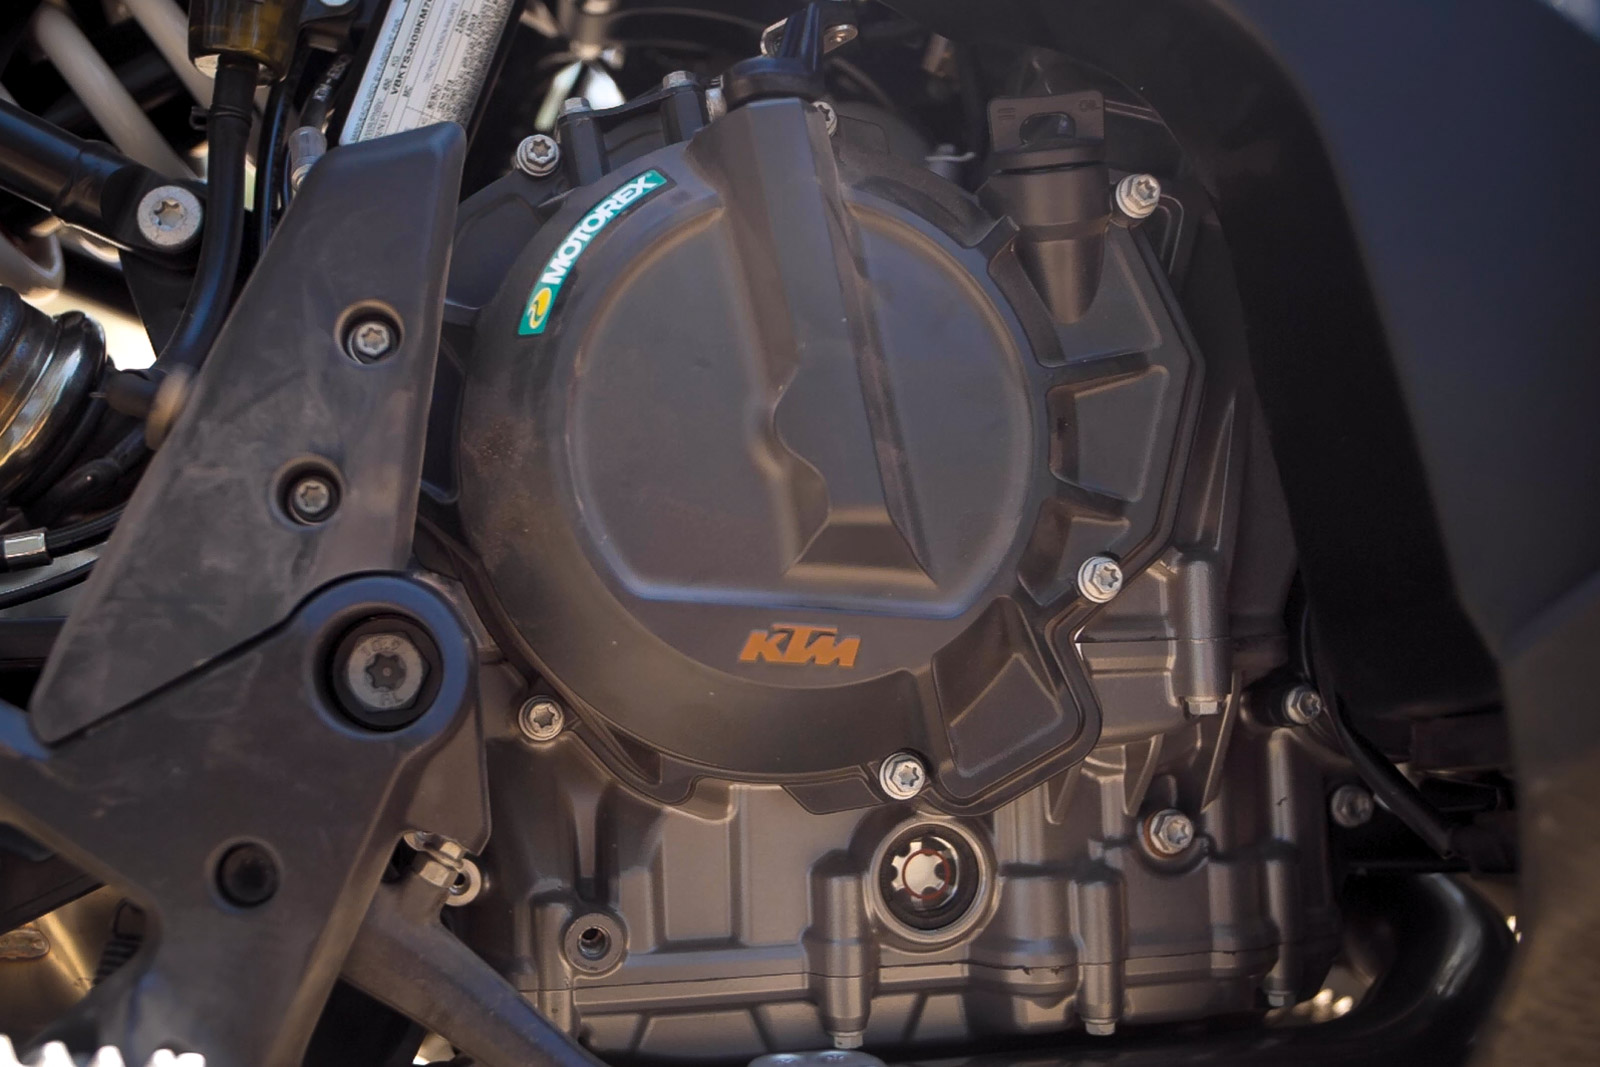 Closes up of the new KTM 790 adventure's engine